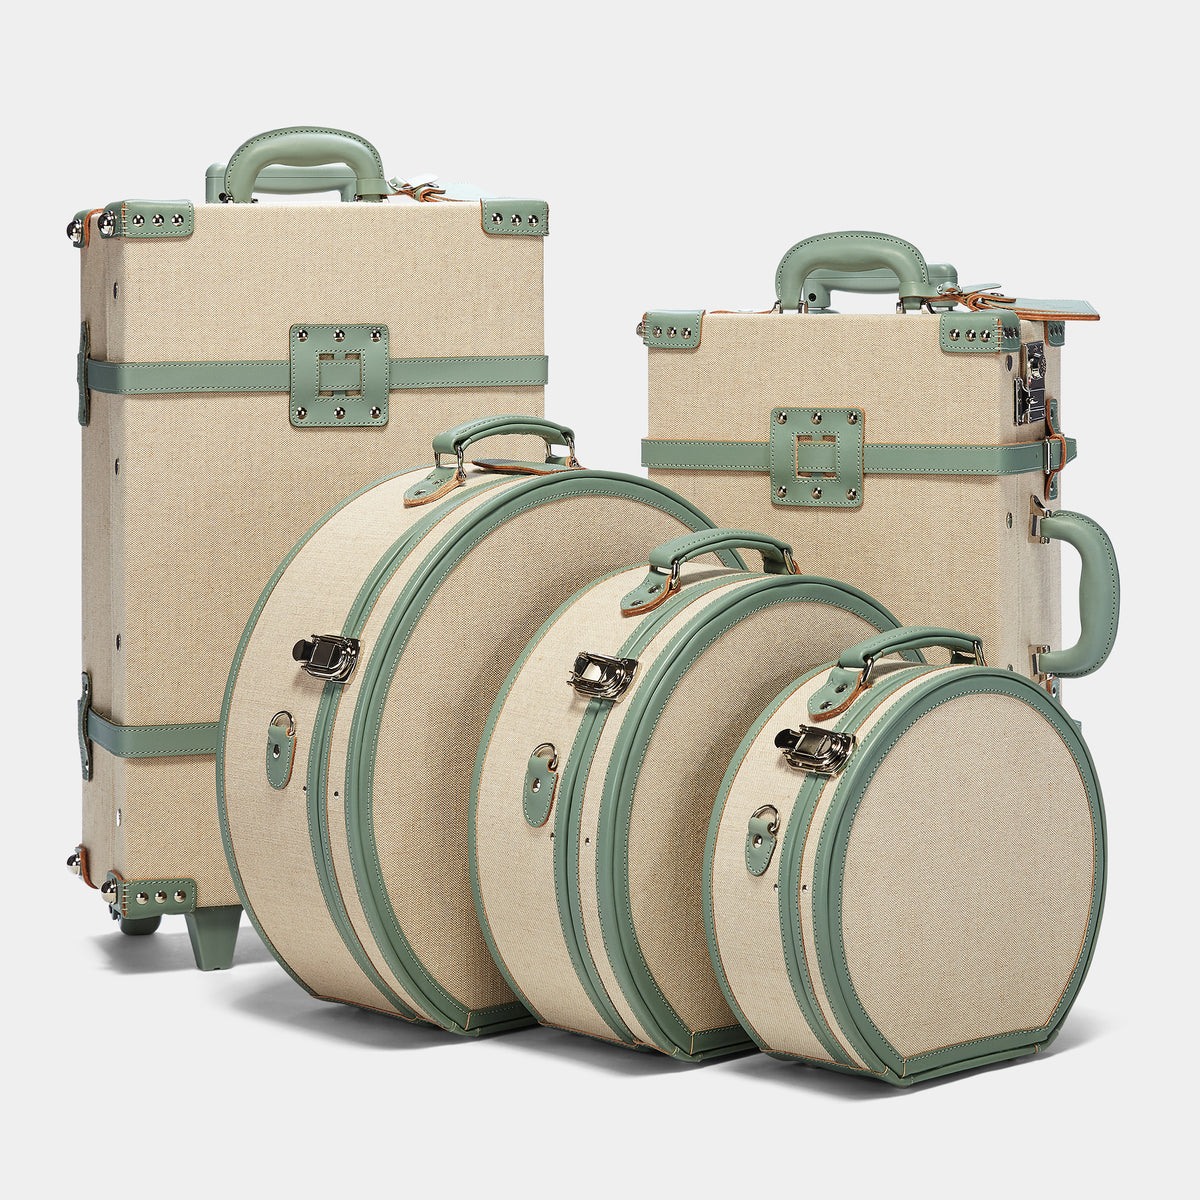 The Editor Carryon in Seagreen - Vintage Style Linen and Leather Case - Carryon with matching Editor Cases and Hatboxes